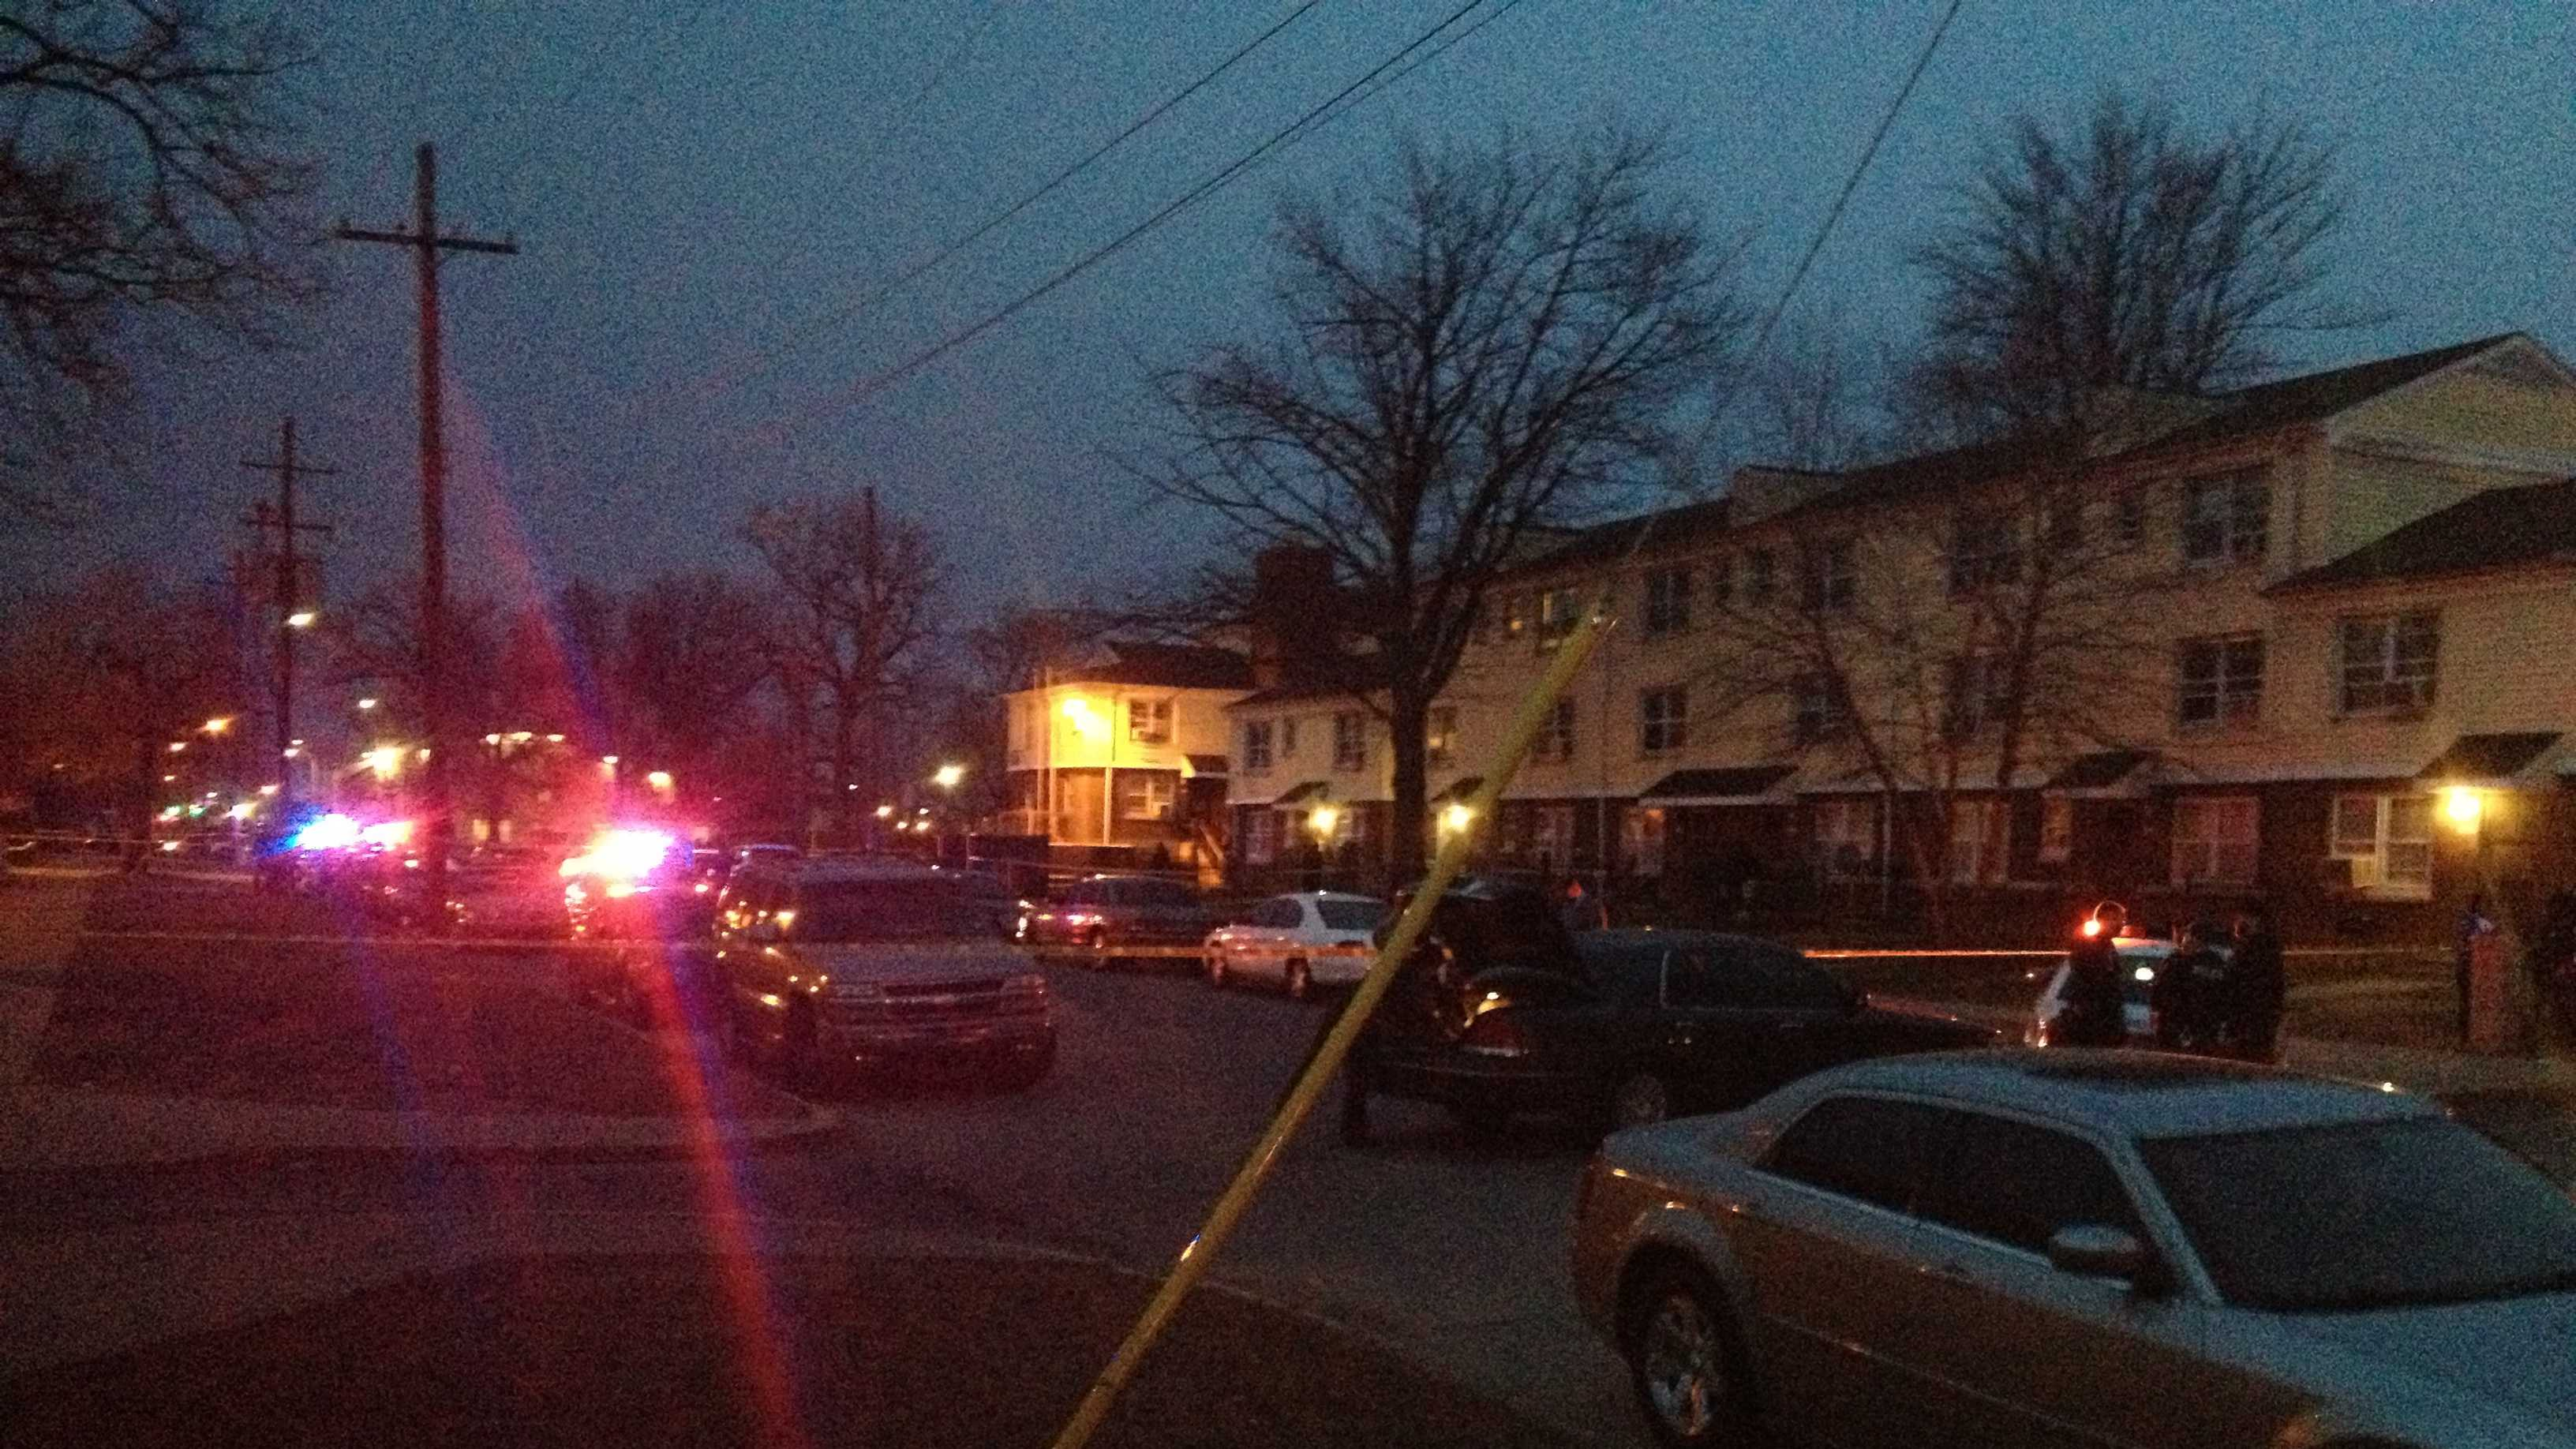 Police investigate after 2 shot at housing complex